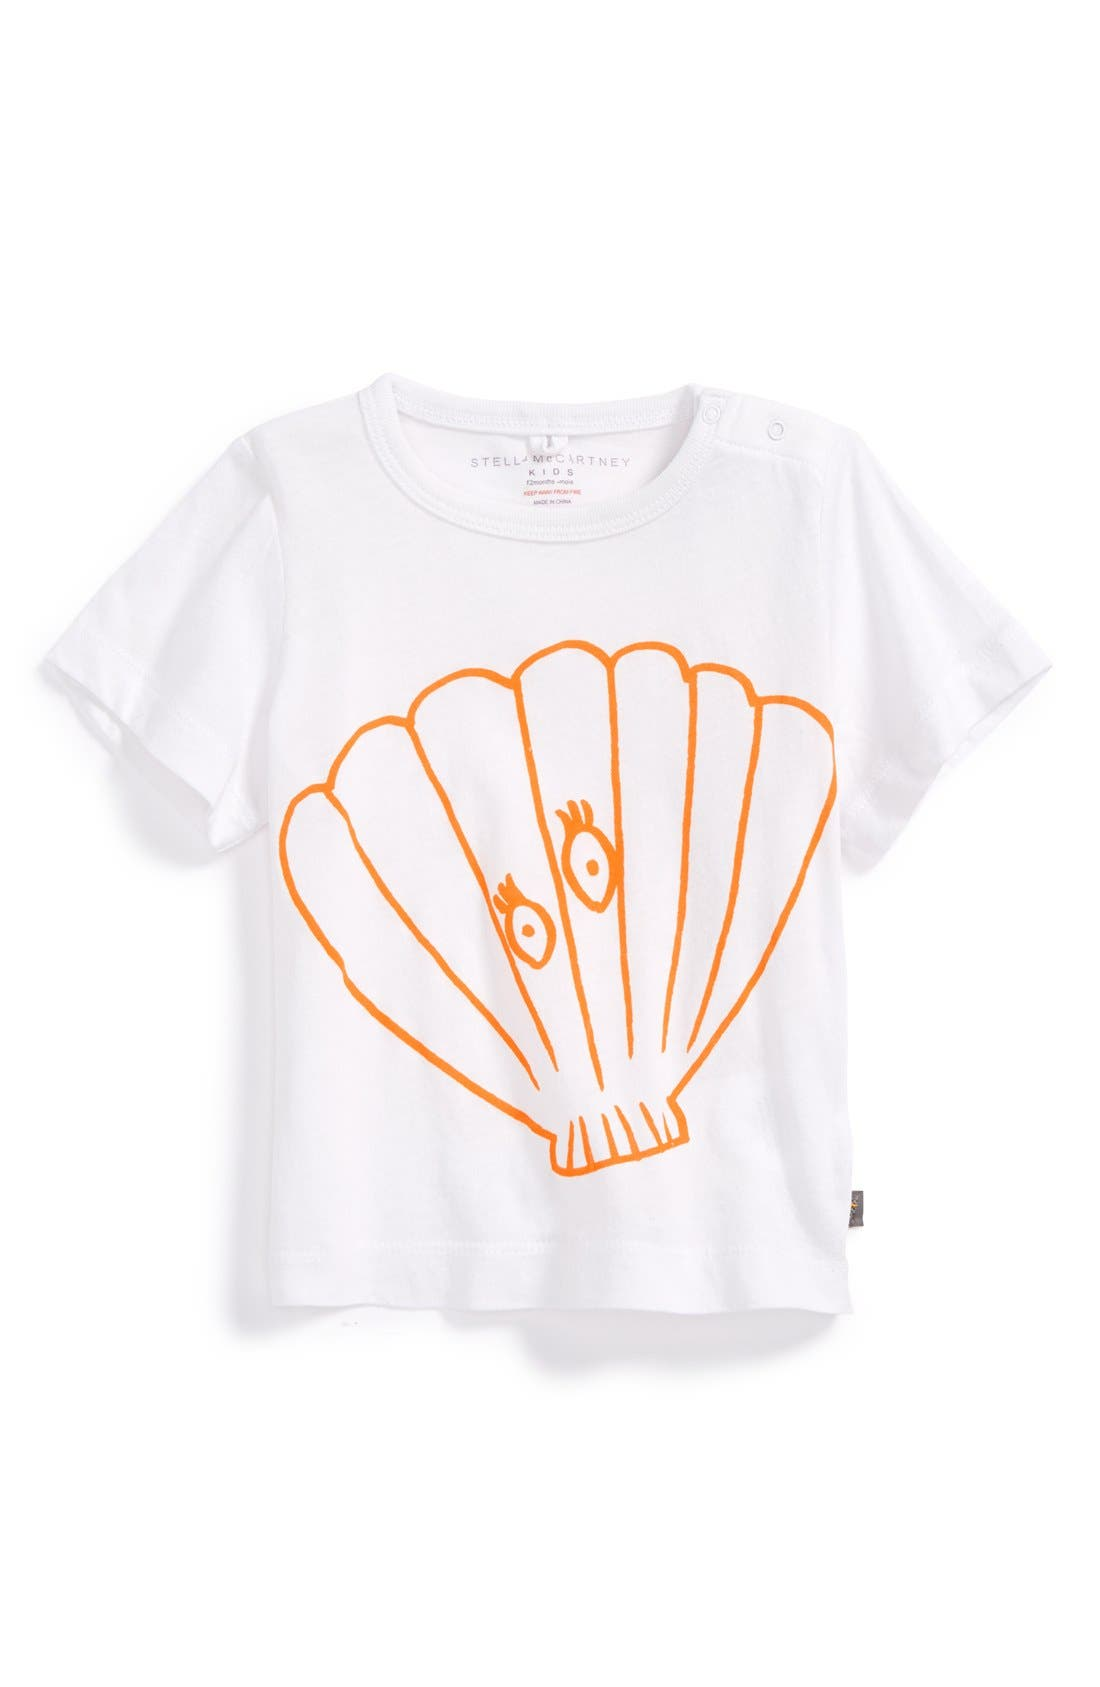 STELLA MCCARTNEY KIDS Seashell Graphic Organic Cotton Tee, Main, color, 100